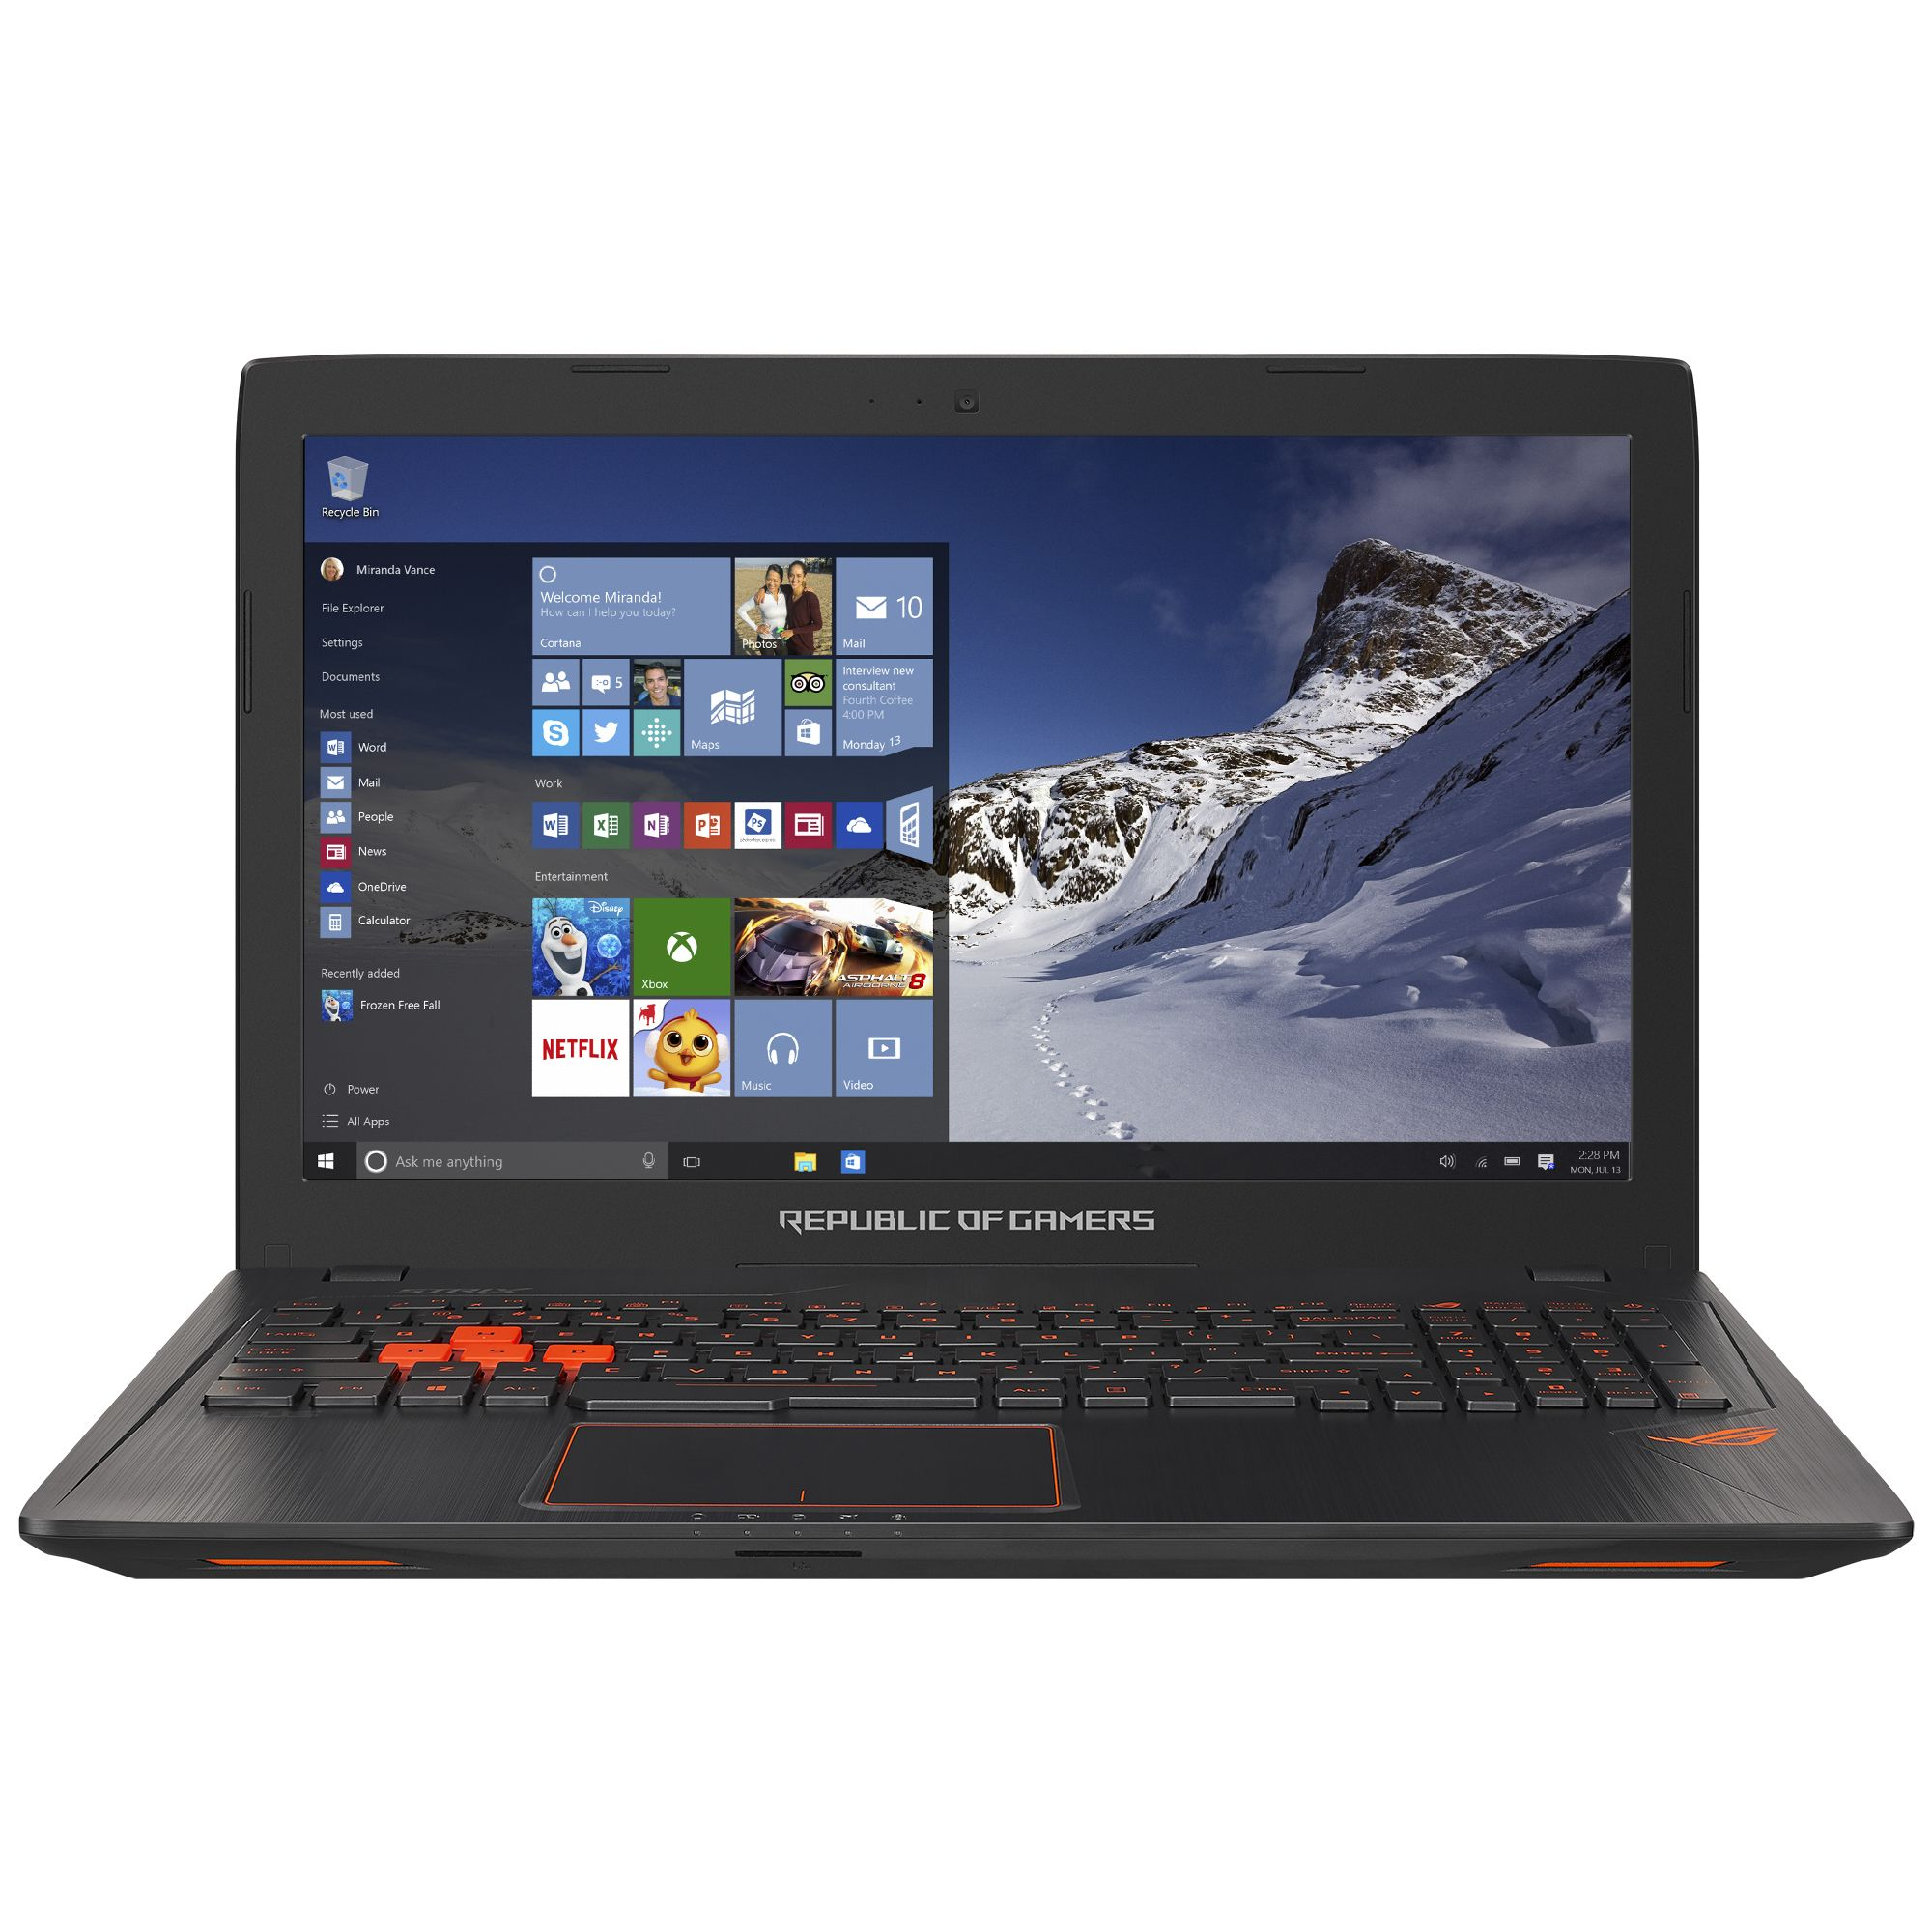 Notebook Asus ROG GL553VE 15.6 Full HD Intel Core i7-7700HQ GTX 1050 Ti-4GB RAM 24GB HDD 1TB + SSD 128GB Endless OS